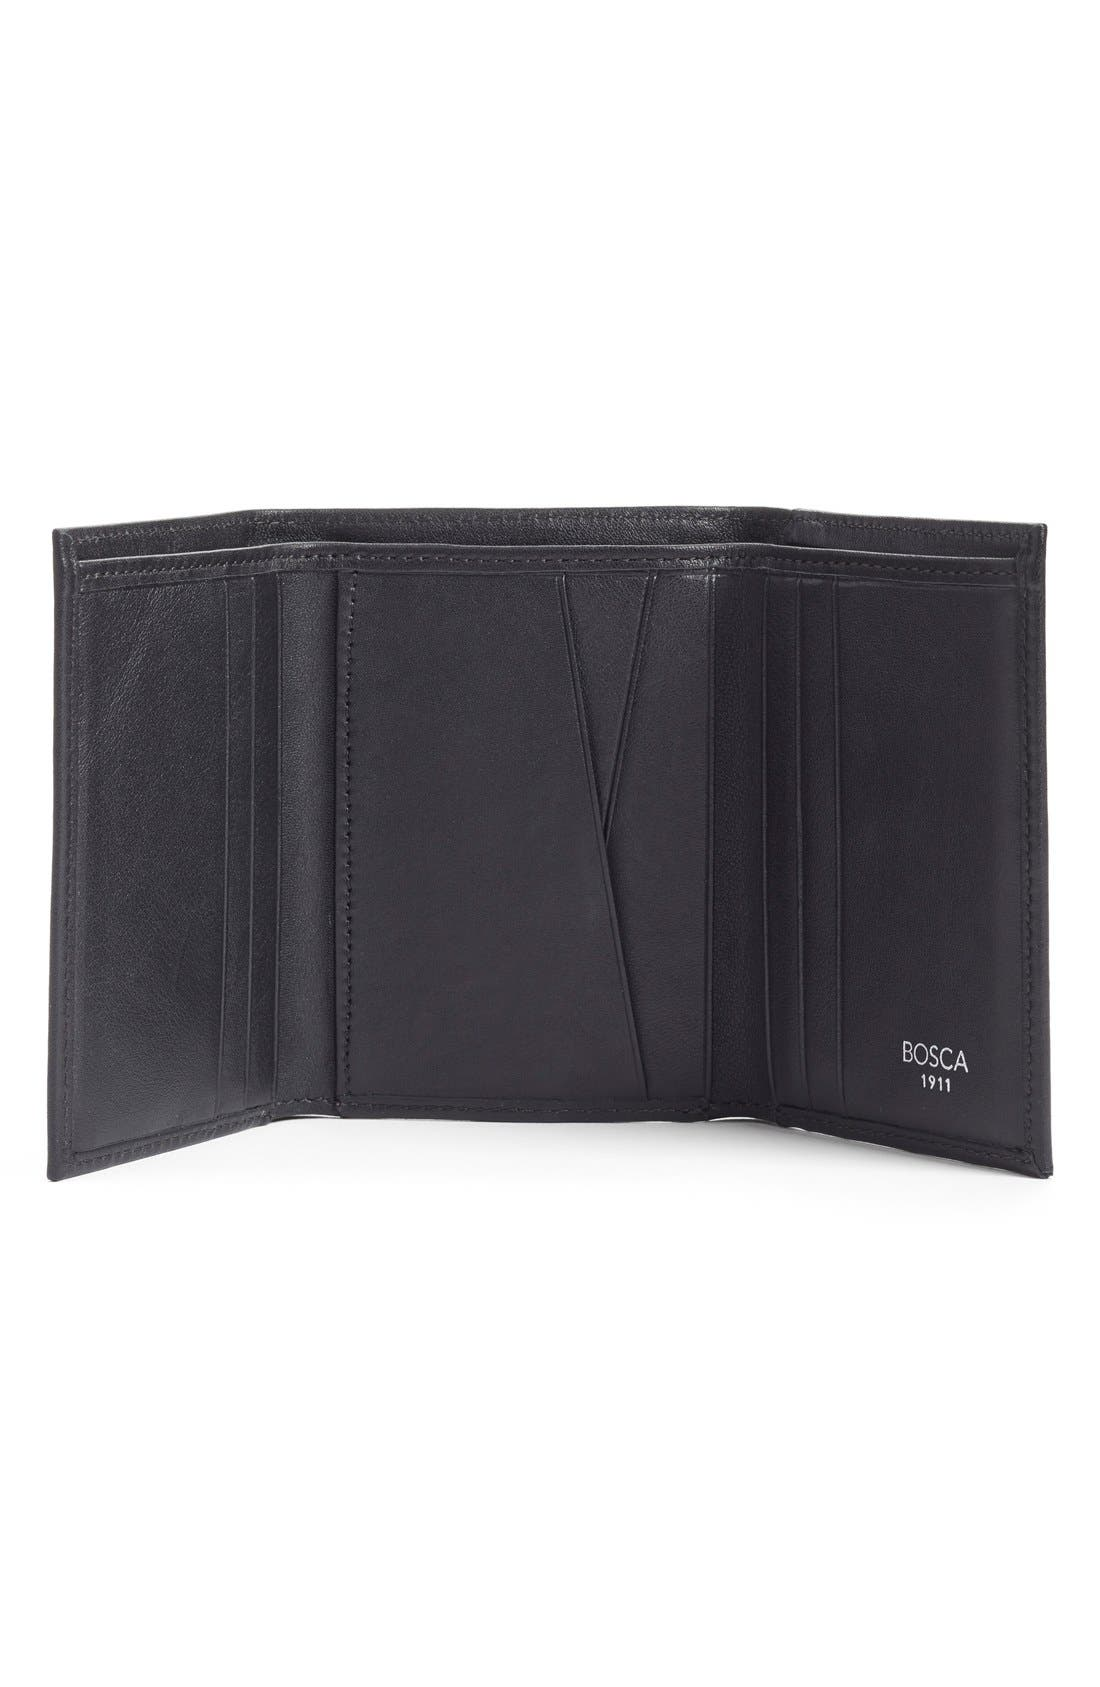 Leather Trifold Wallet,                             Alternate thumbnail 3, color,                             BLACK